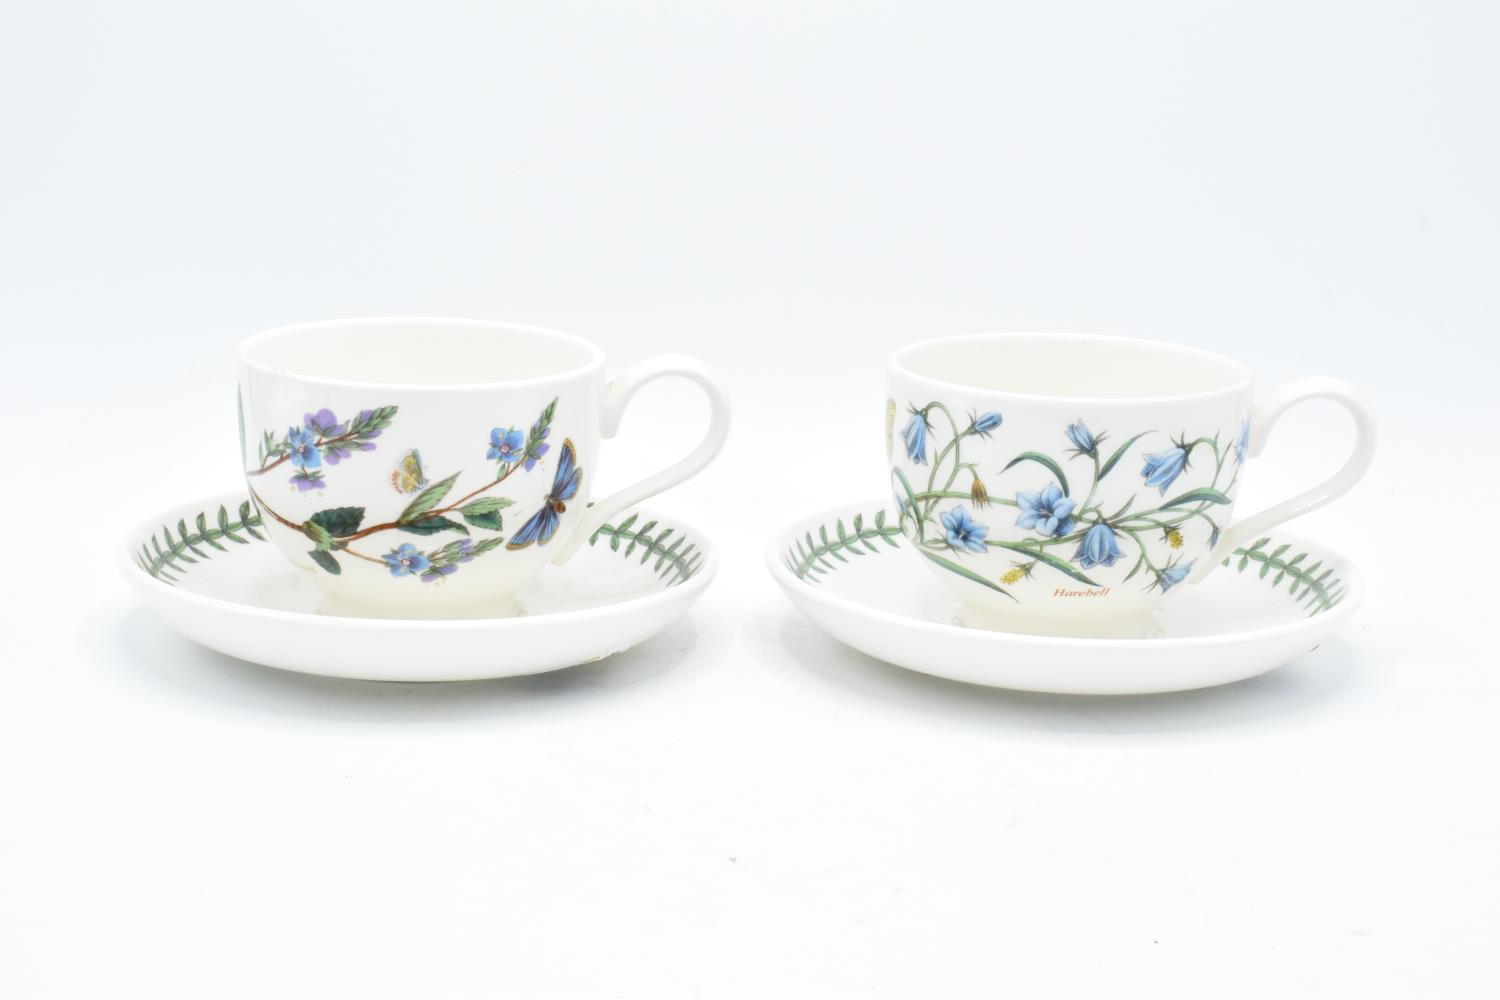 A pair of Portmeirion breakfast cups and saucers in the Botanic garden design (both seconds). In